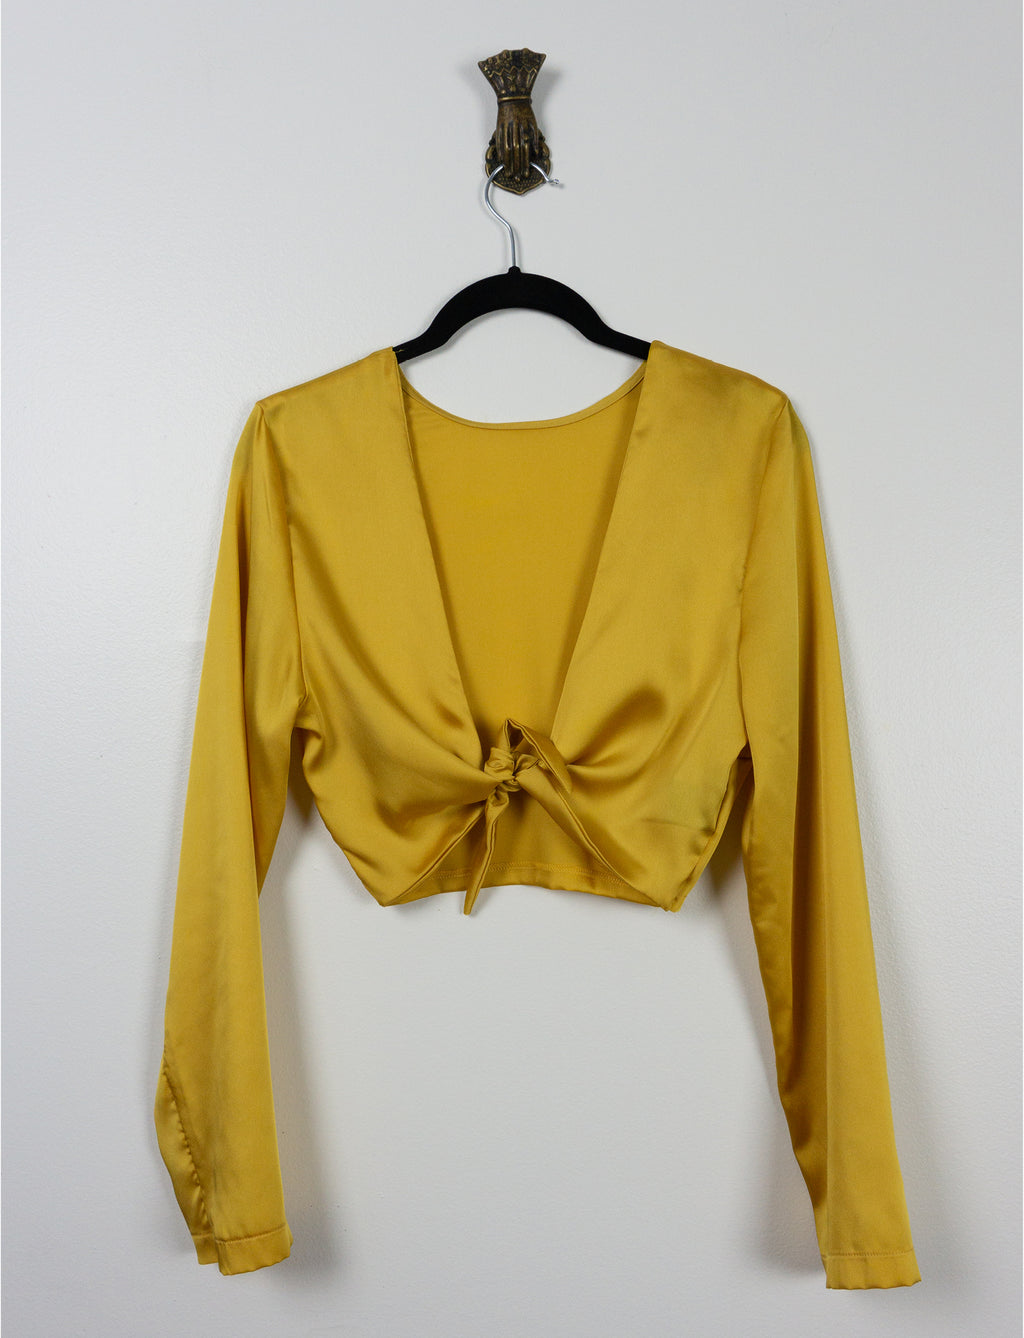 Top Hibis ⌇ Satin jaune ambre ~ Amber yellow satin - auslästudio